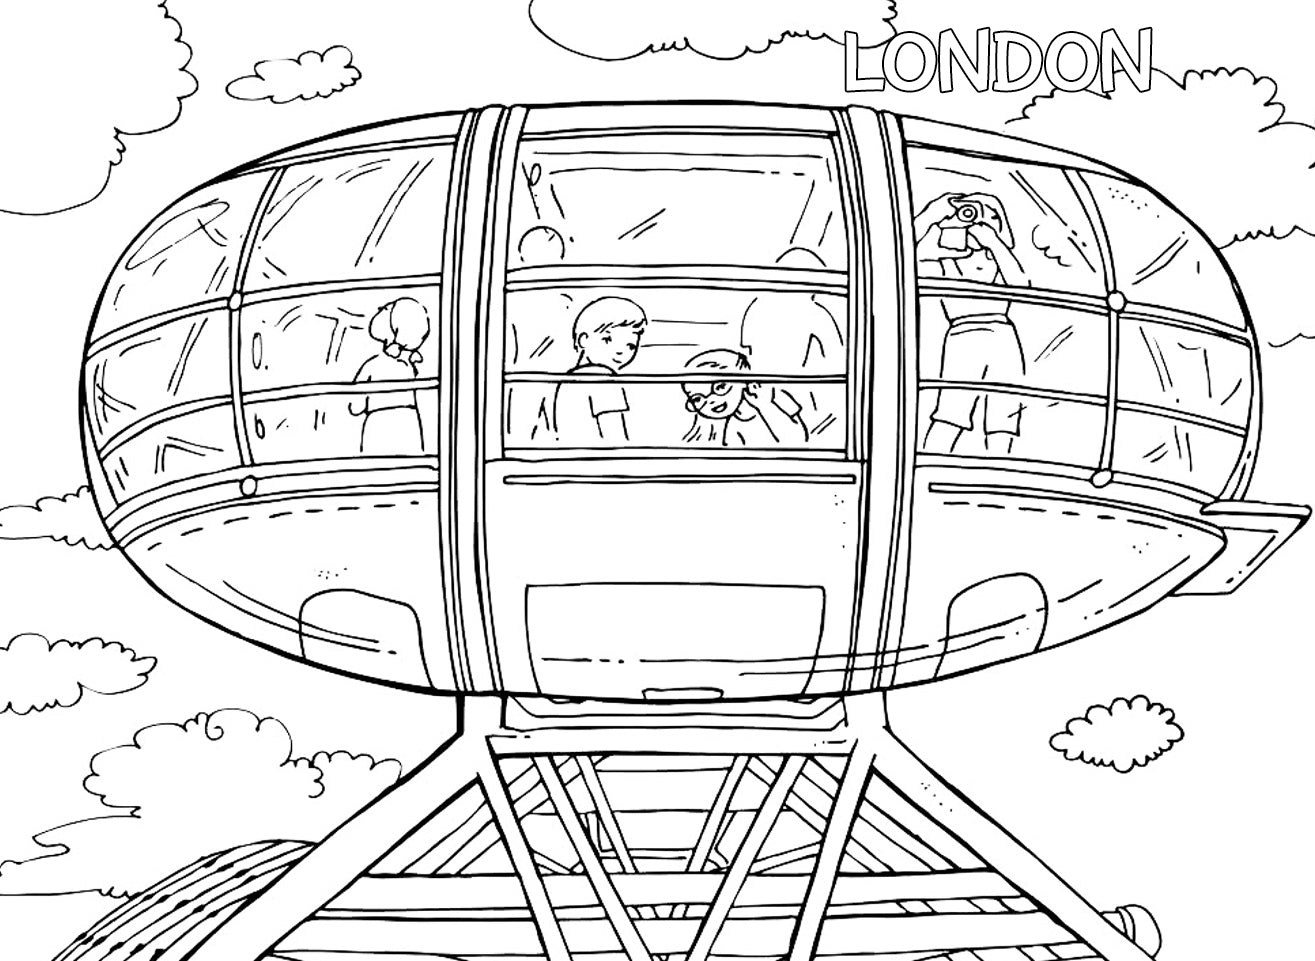 10 Most Amazing Facts About London Eye For Kids